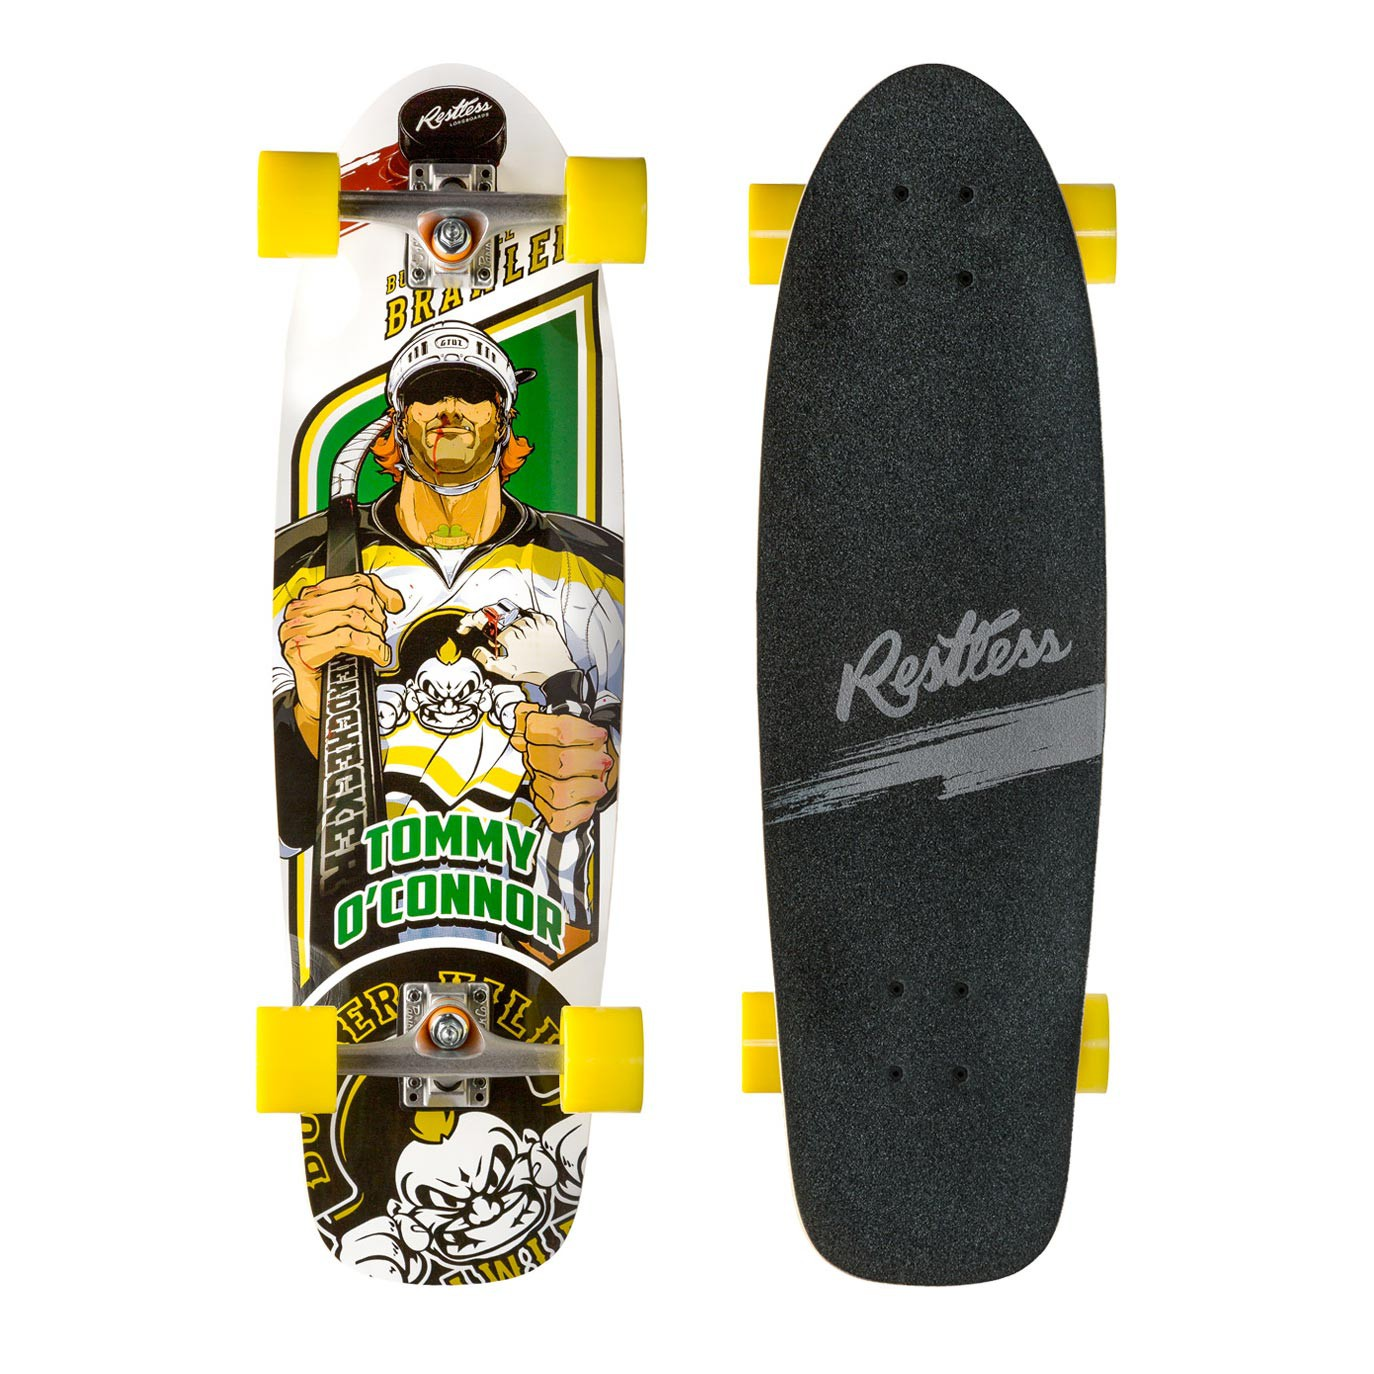 Longboard Restless Rocksteady Brawlers